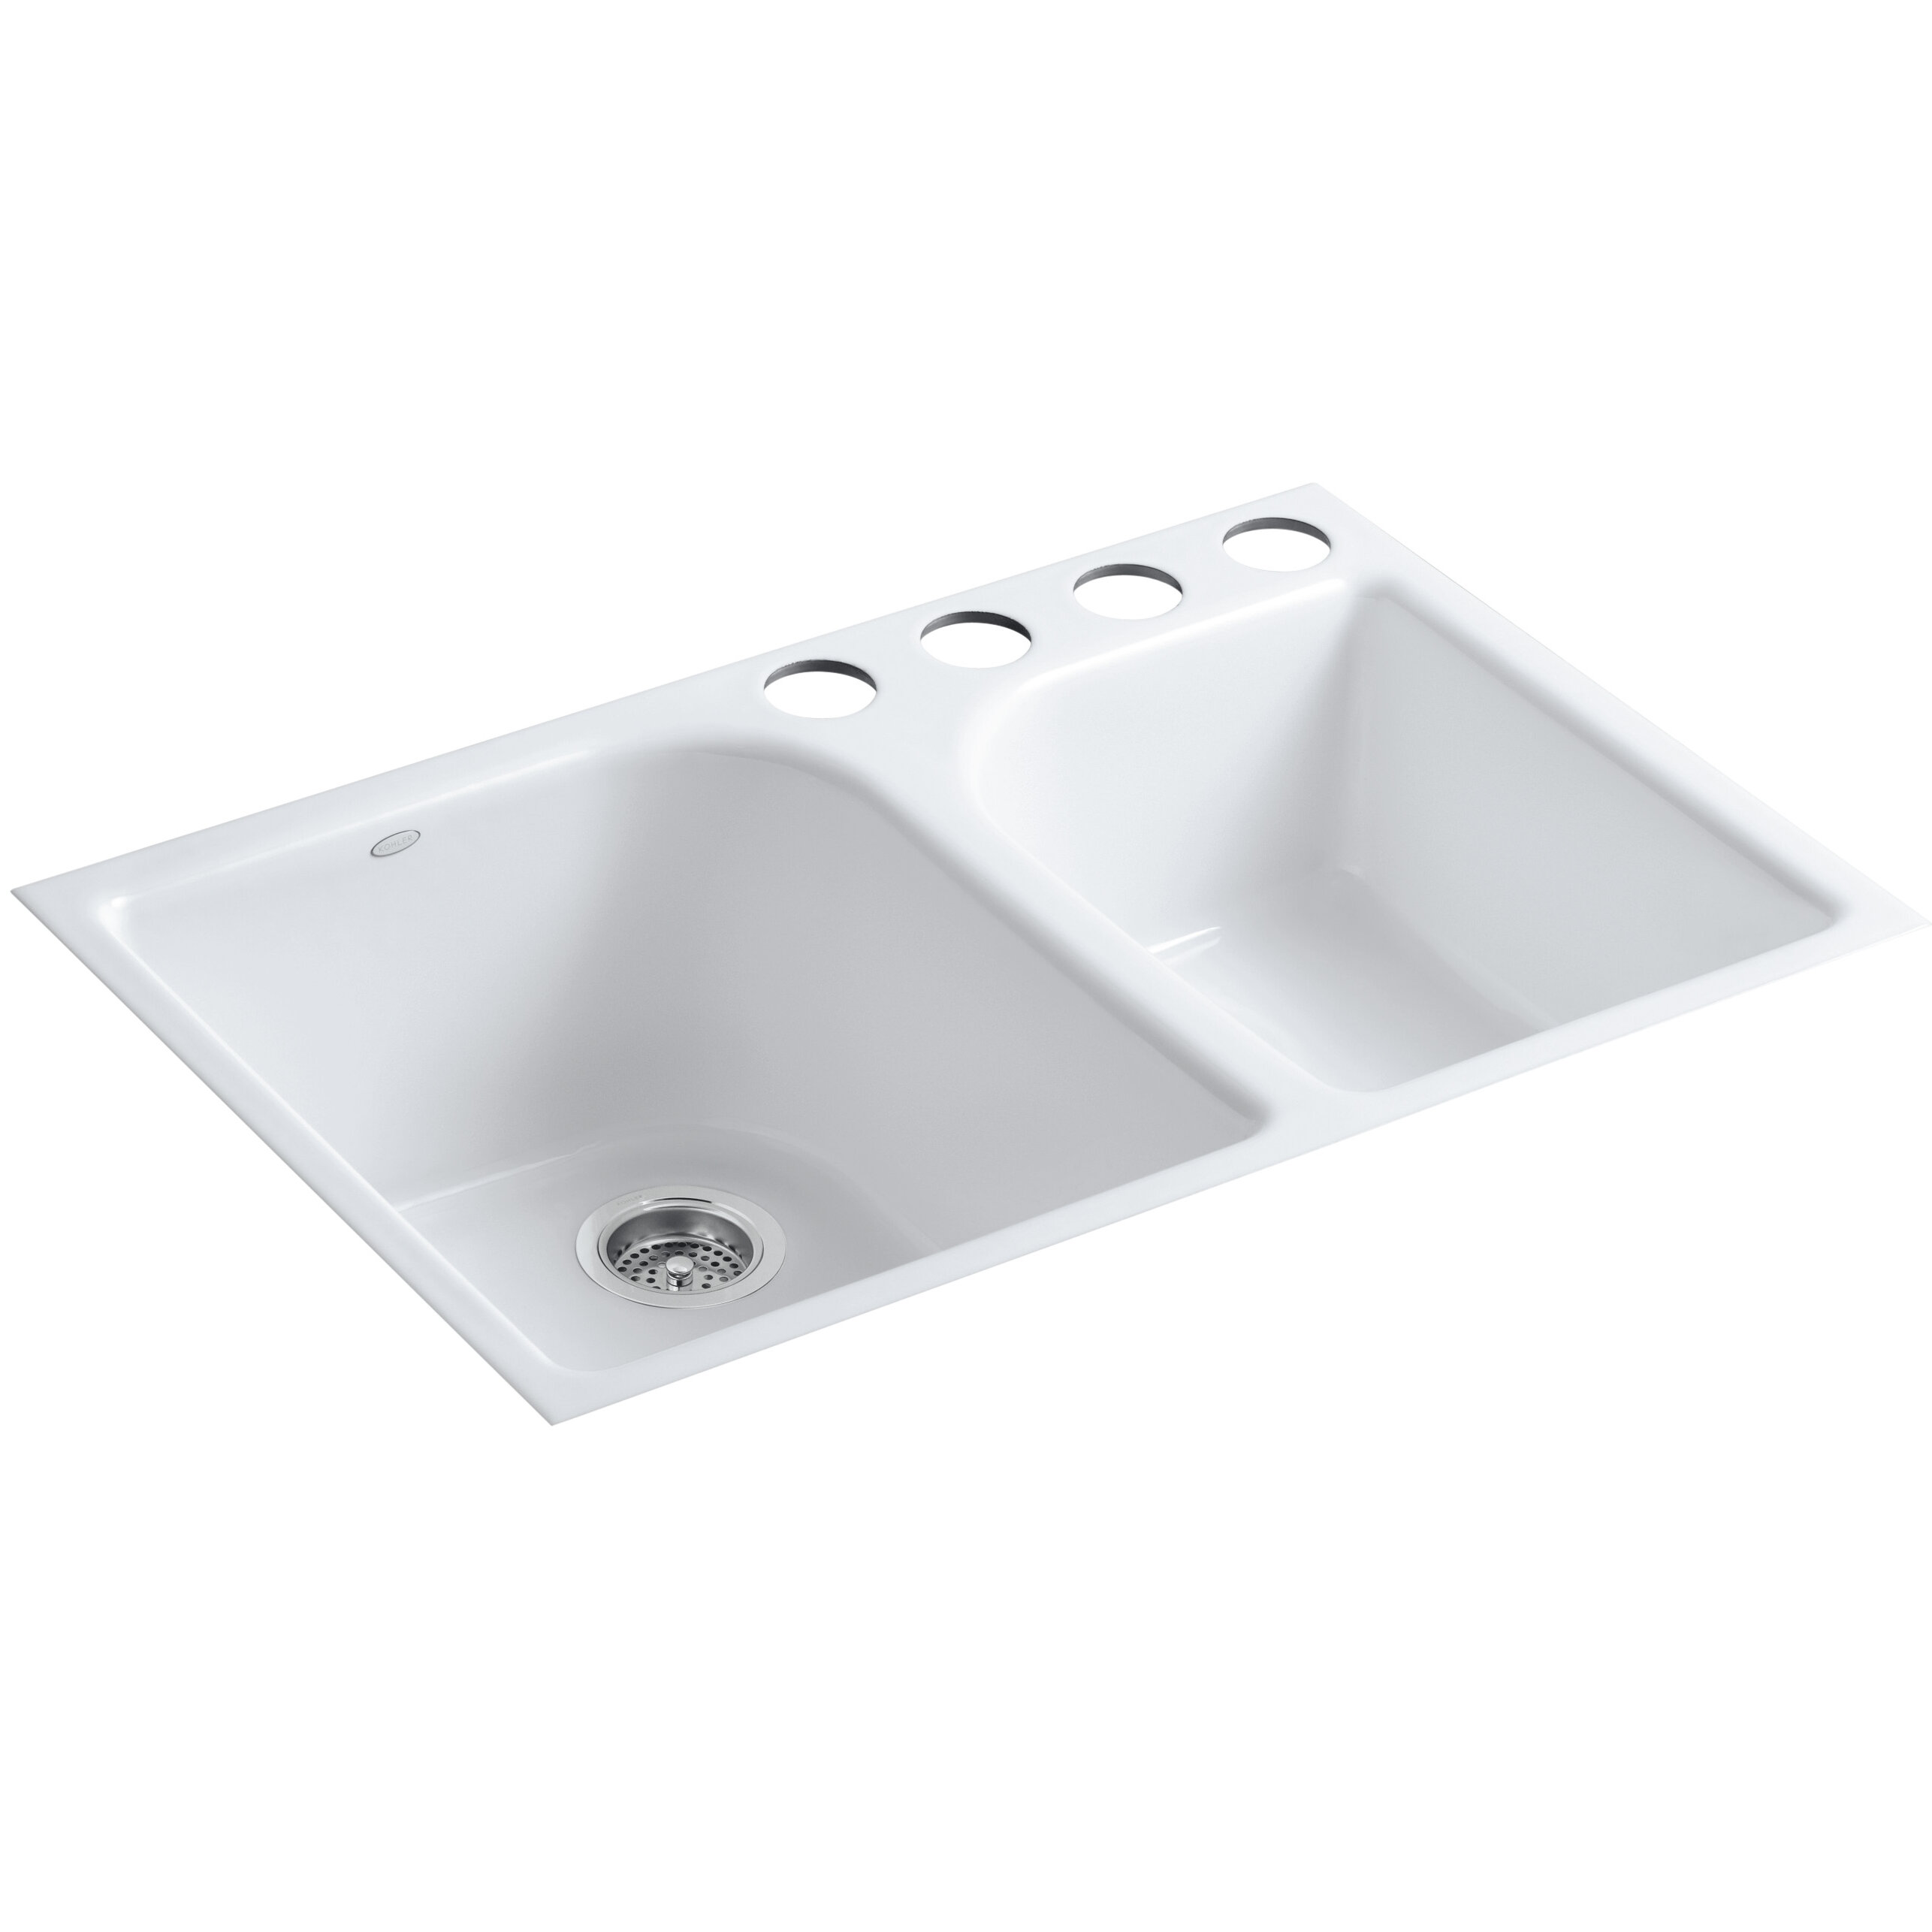 K 5931 4u 0 Kohler Executive Chef 33 L X 22 W 10 5 8 Under Mount Large Medium High Low Double Bowl Kitchen Sink With 4 Oversize Faucet Holes Wayfair